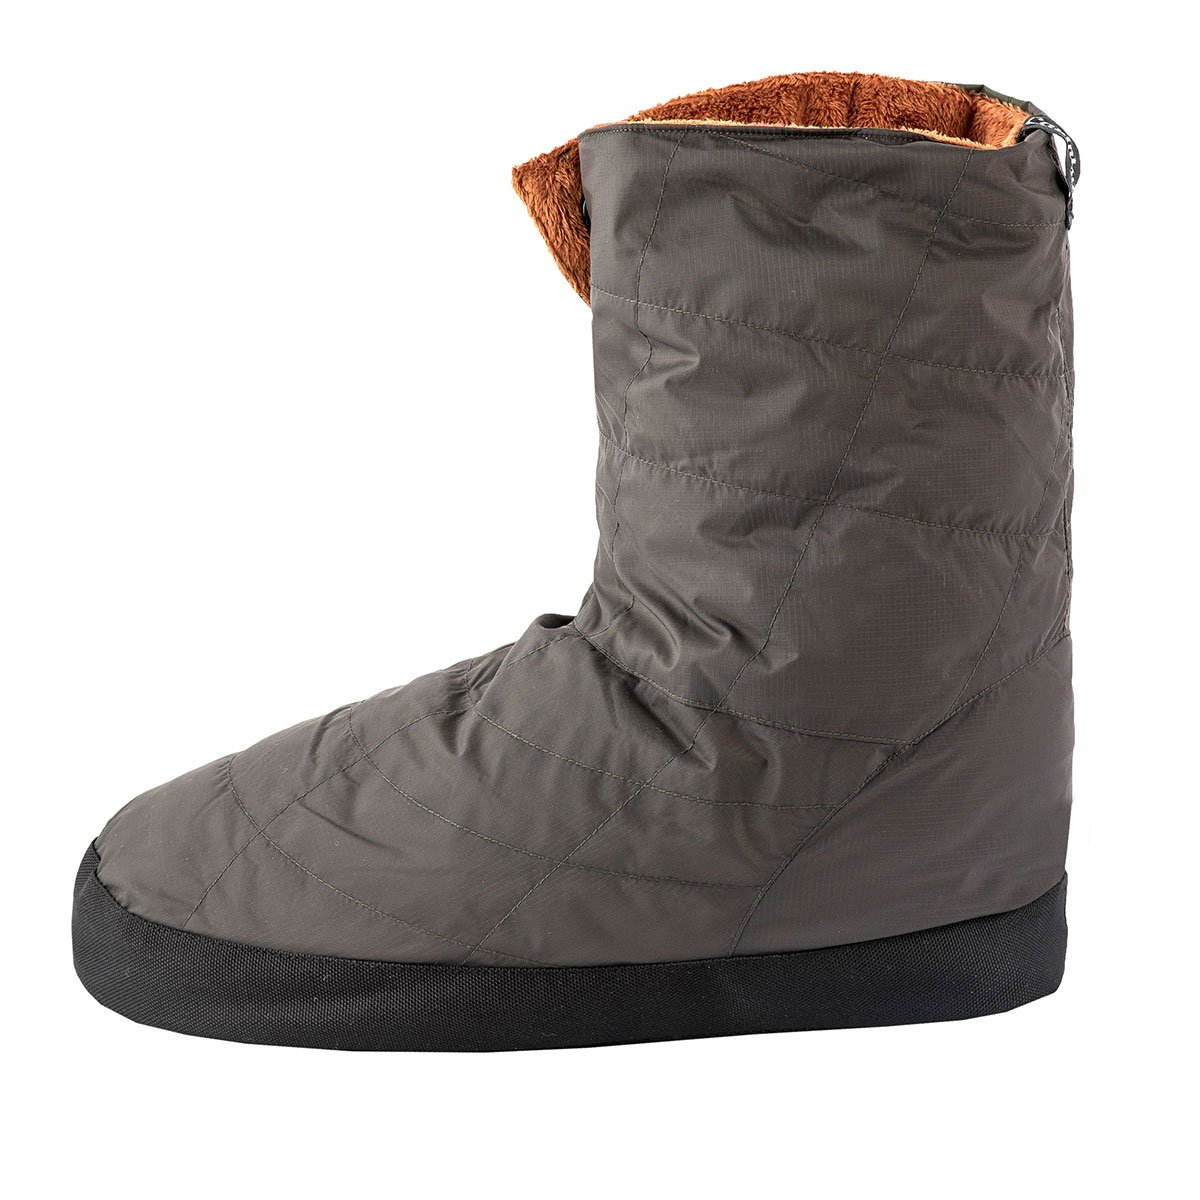 Cabiniste Men's Down Insulated Bootie (Medium, Pewter/Copper) by Cabiniste (Image #5)